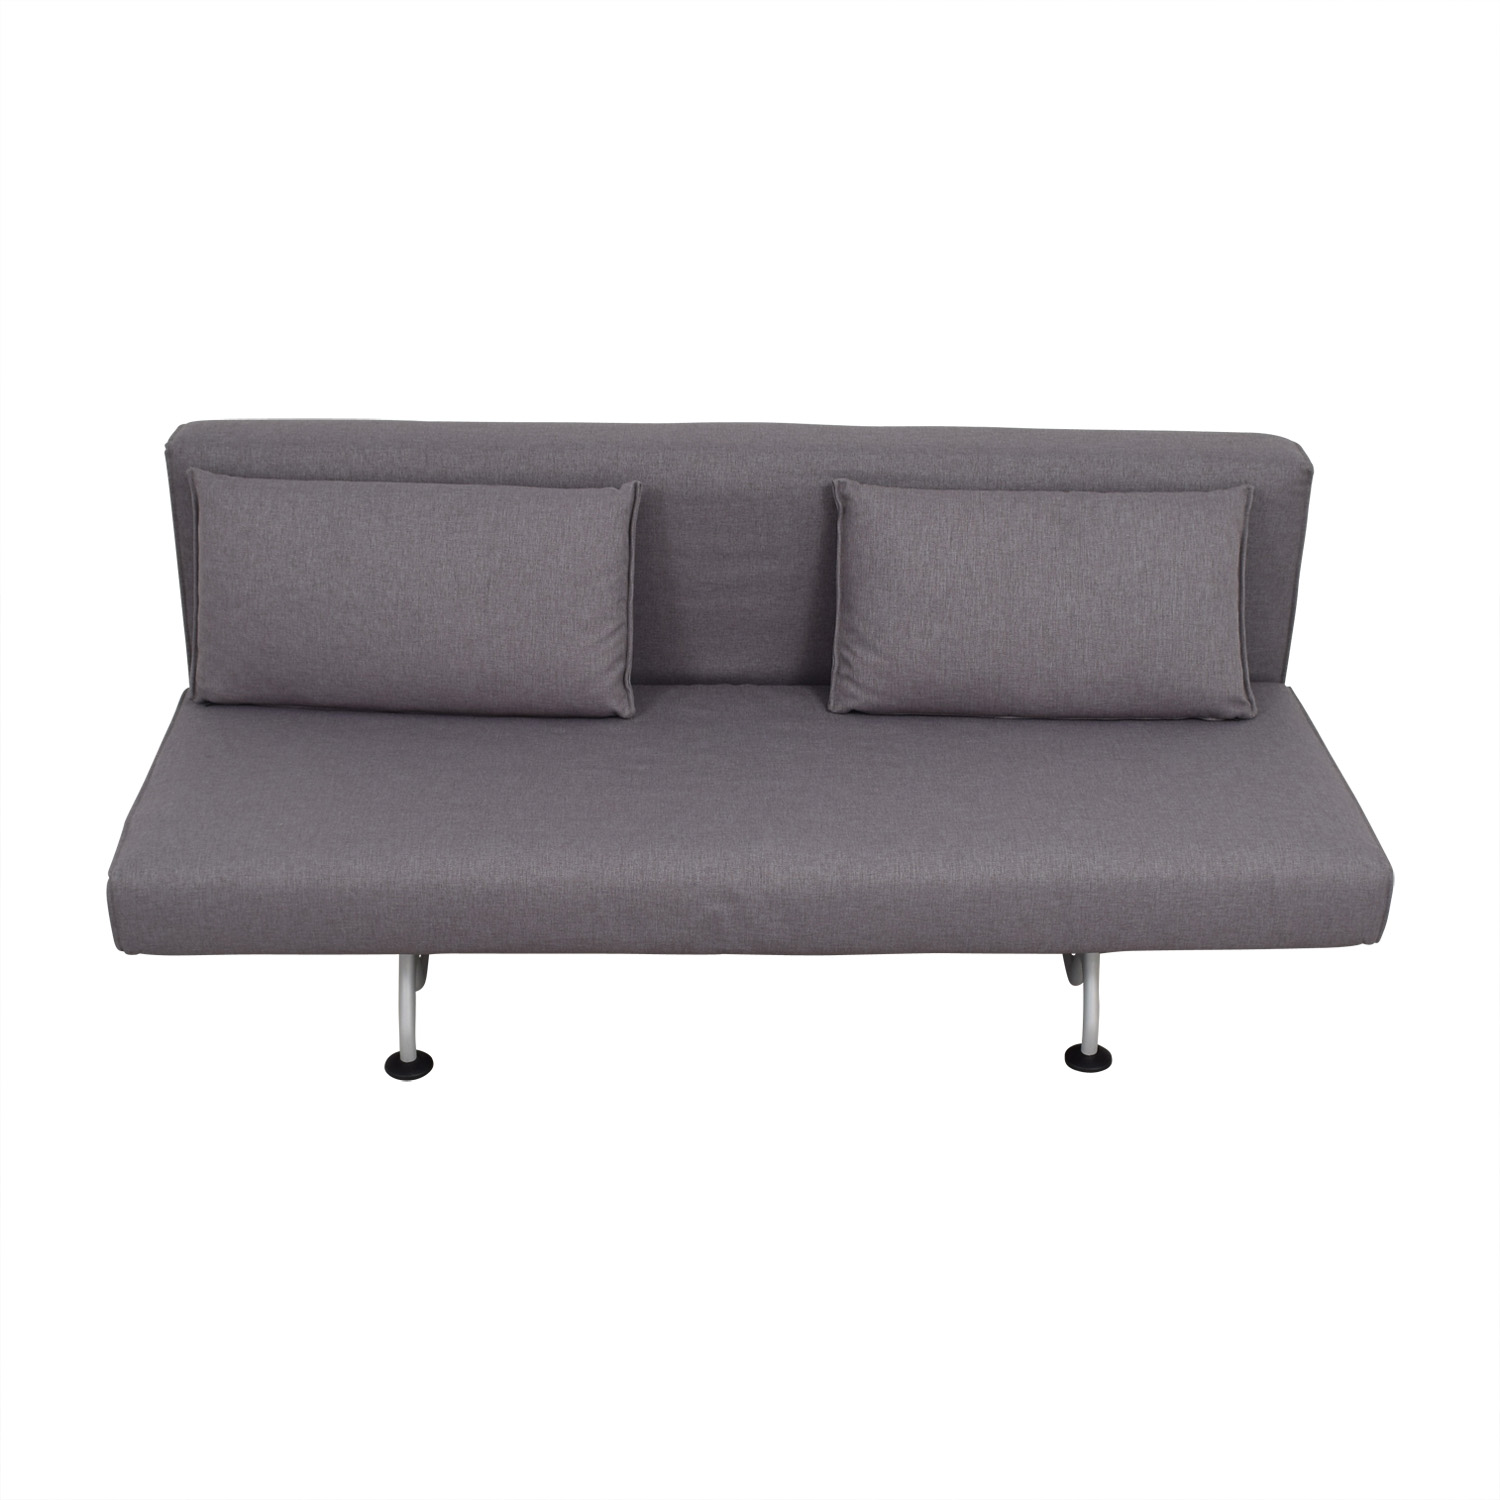 dwr sleeper sofa craigslist for sale by owner sofas used